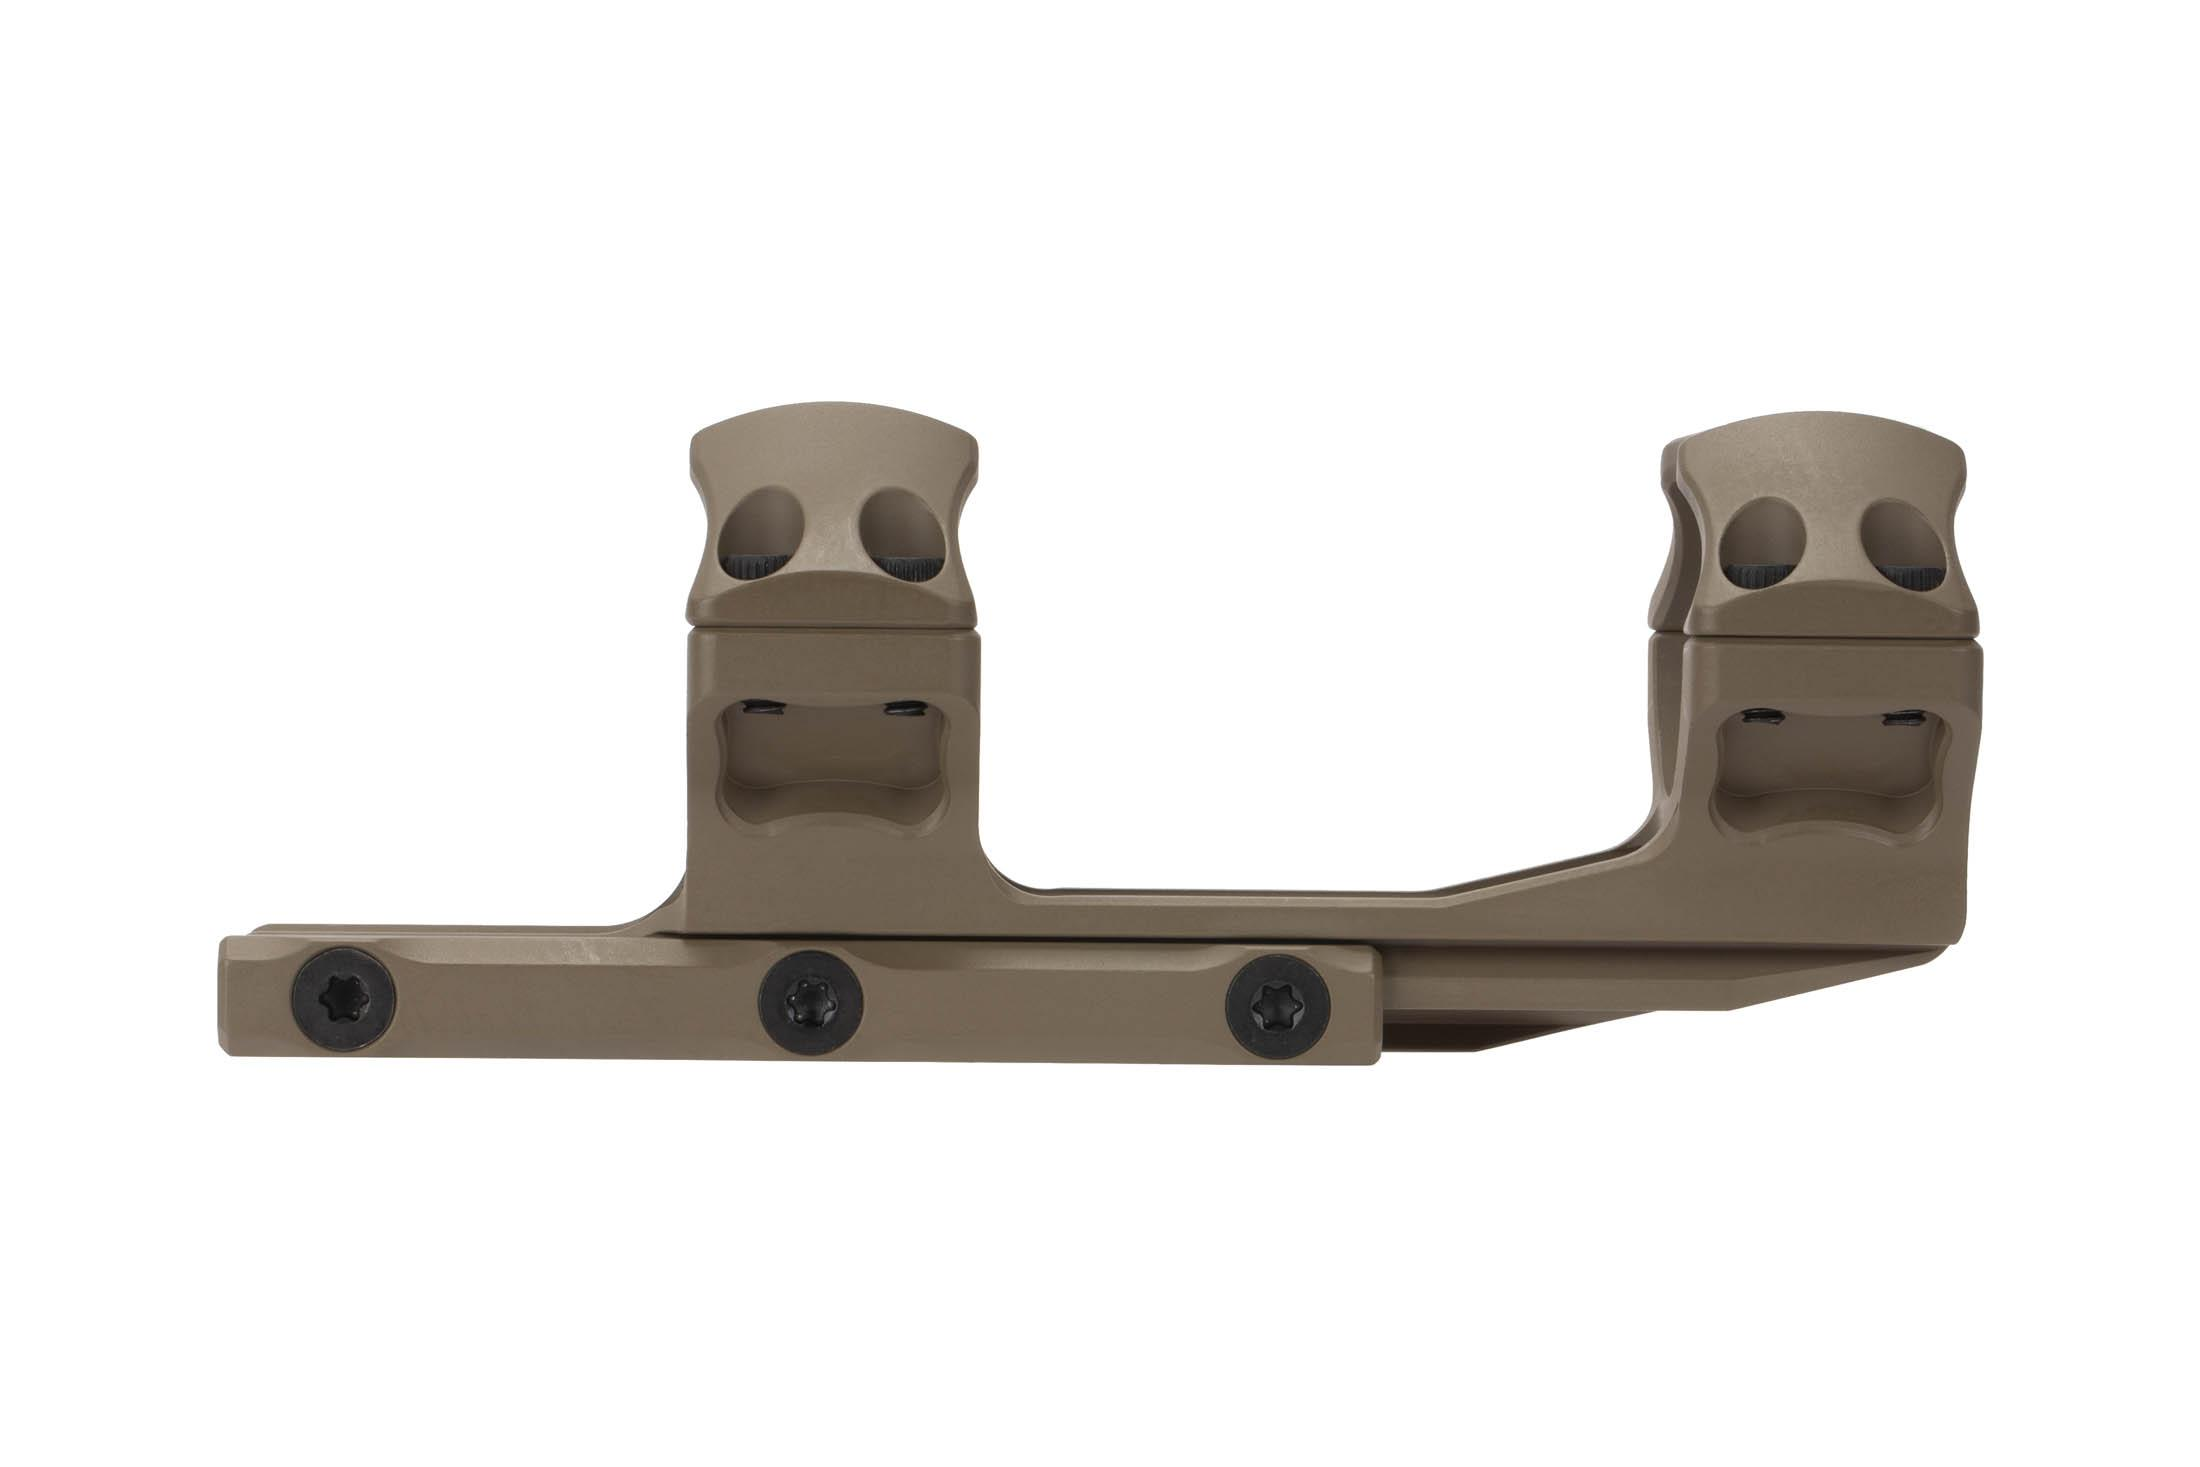 Leapers UTG ACCU-SYNC 30mm medium height extended scope mount is machined from 6061-T6 aluminum with FDE anodized finish